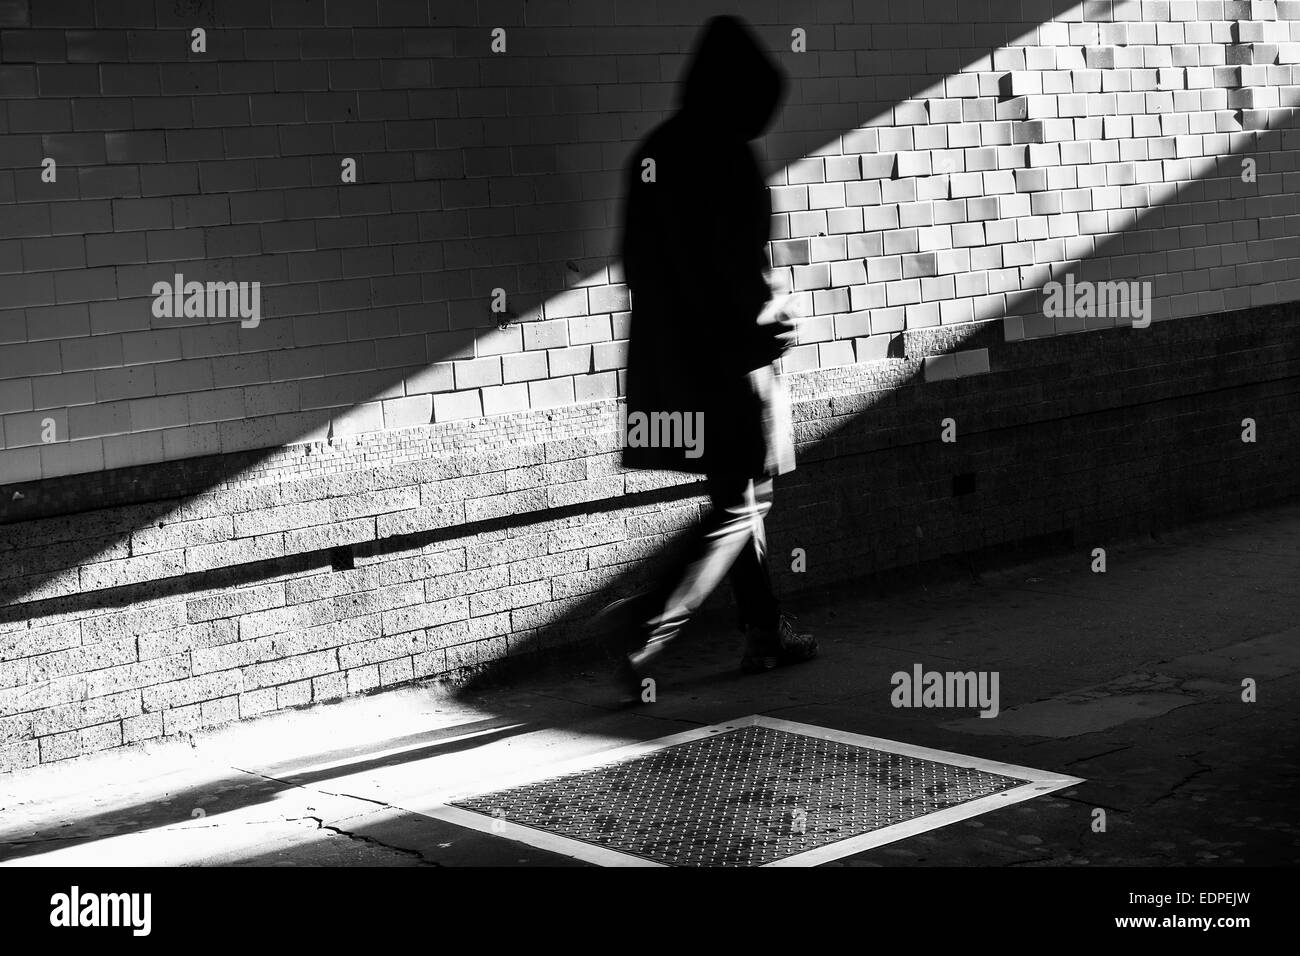 hooded figure in shadow with tiles - Stock Image